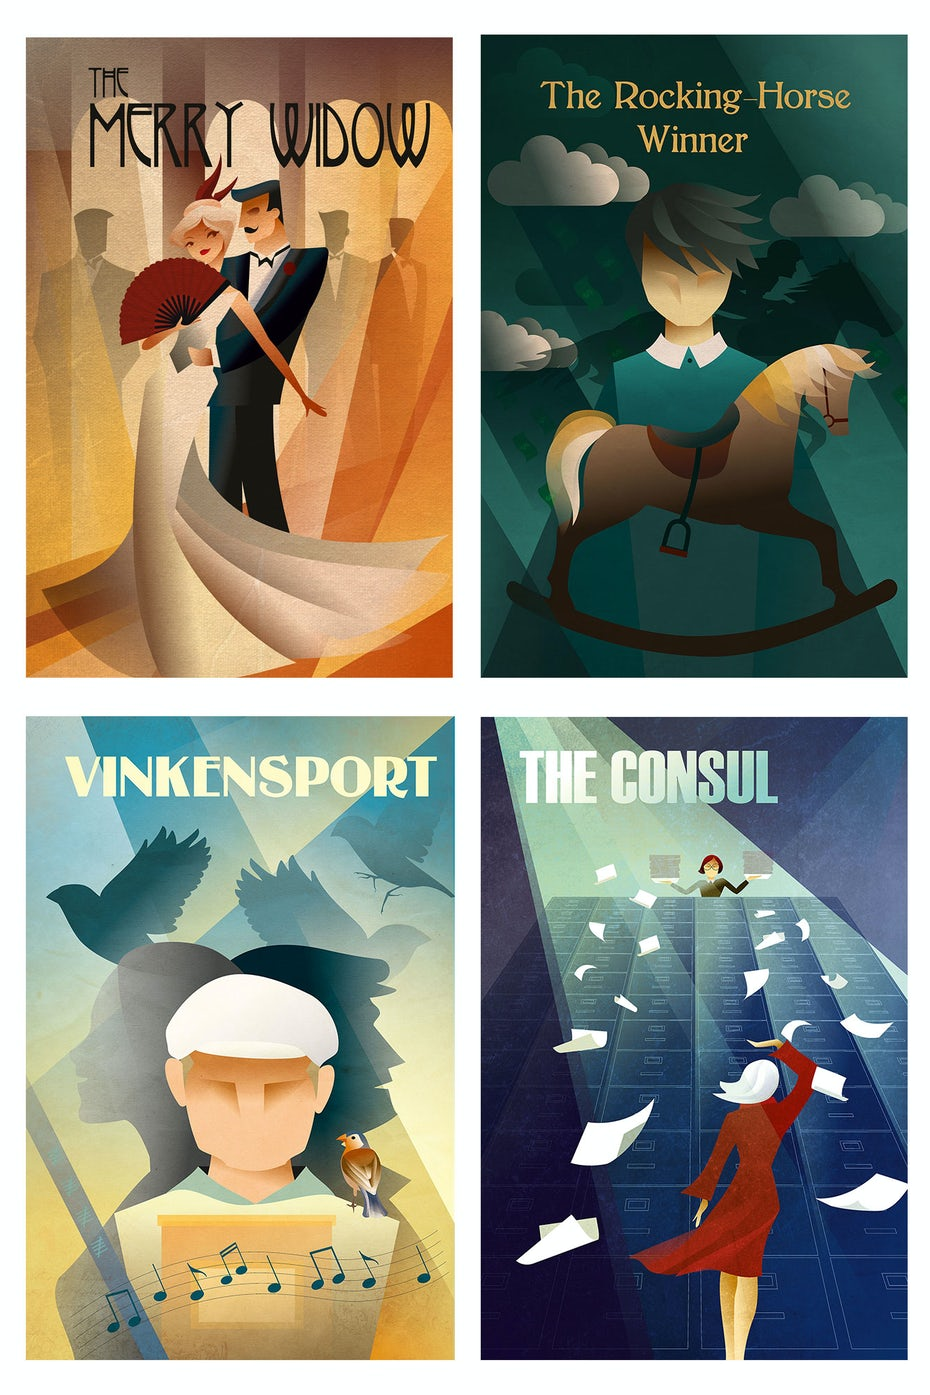 Art deco theater posters